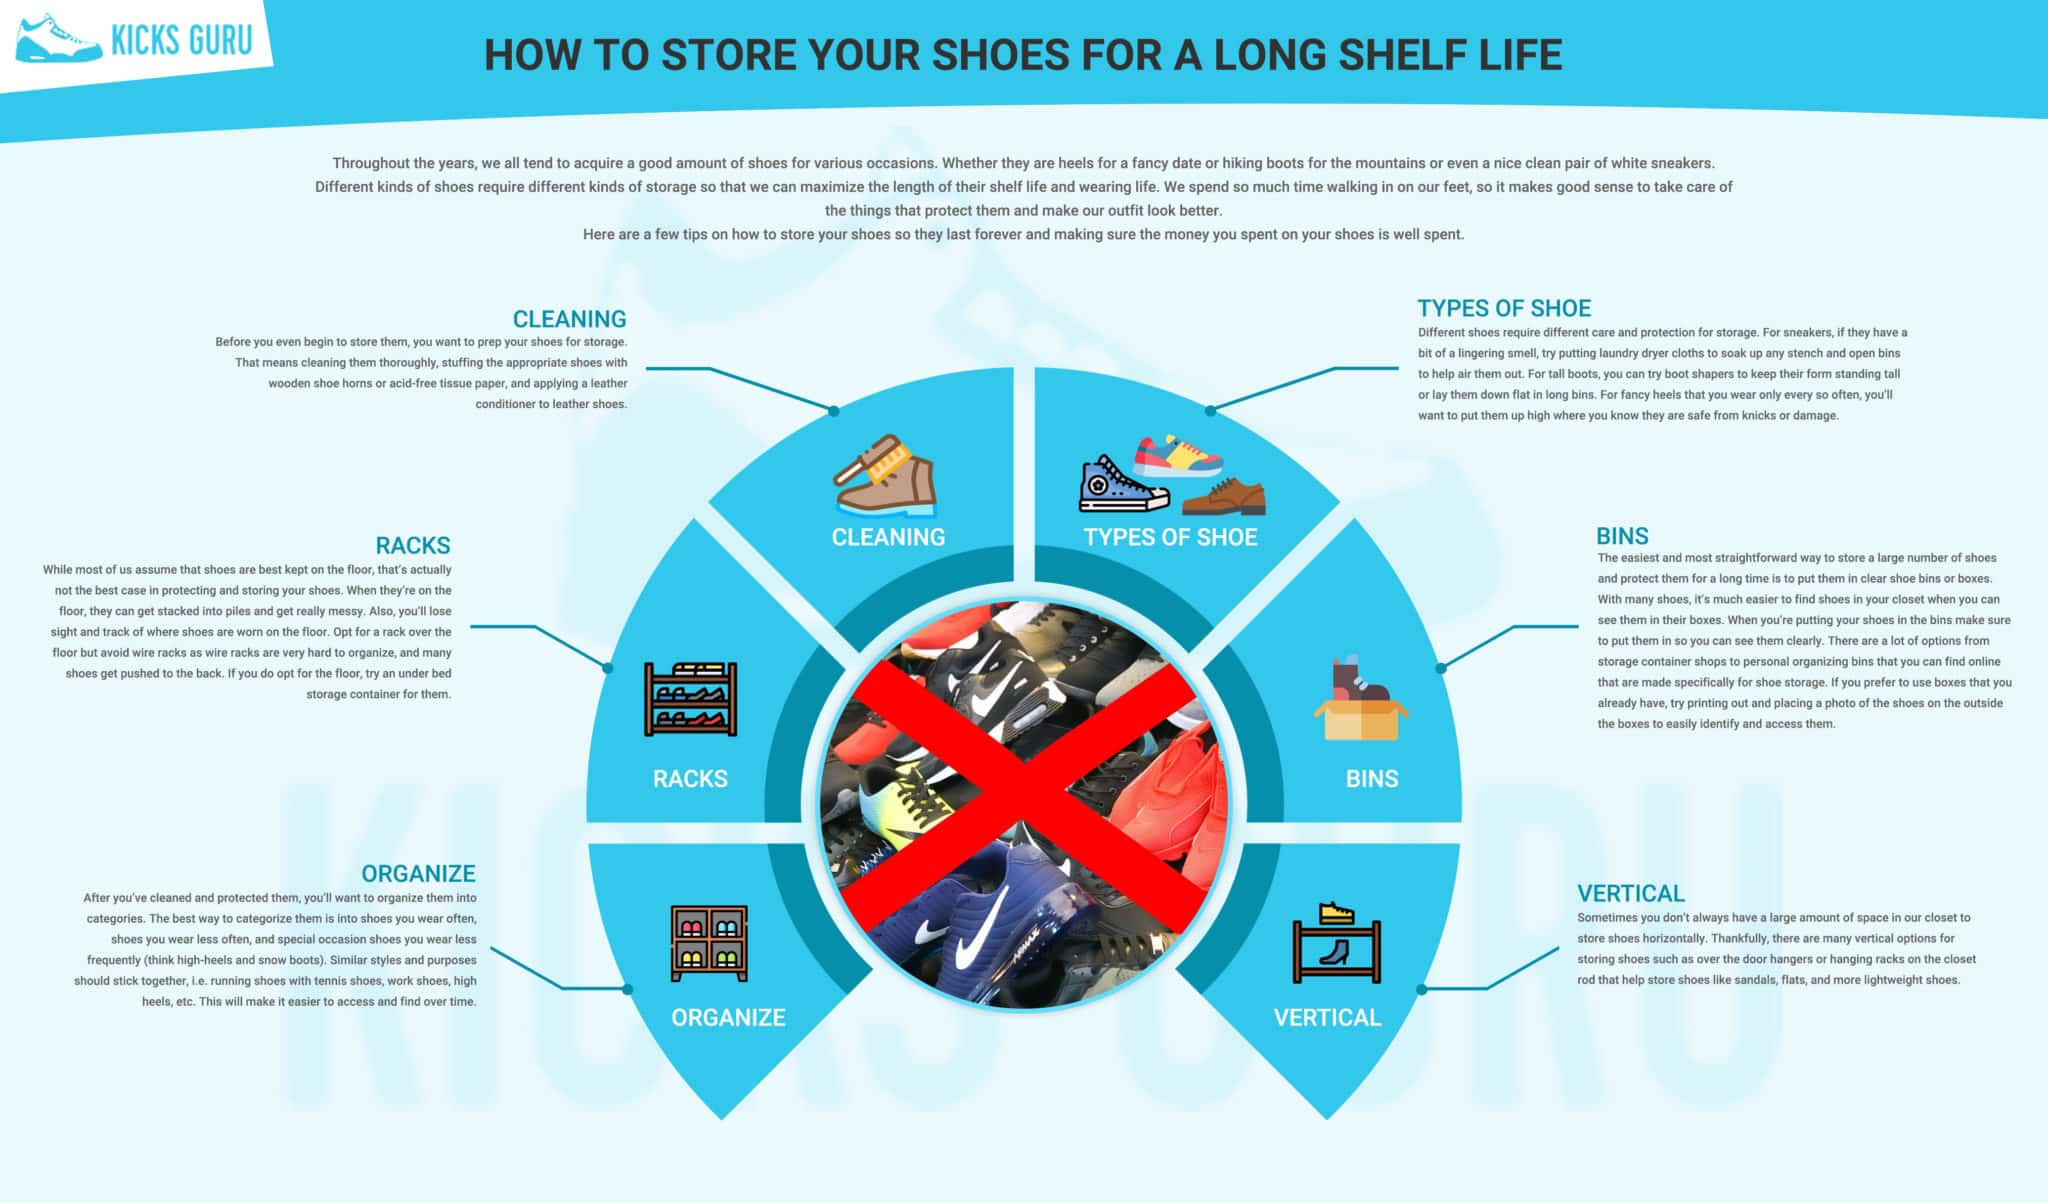 How to store your shoes for a long shelf life